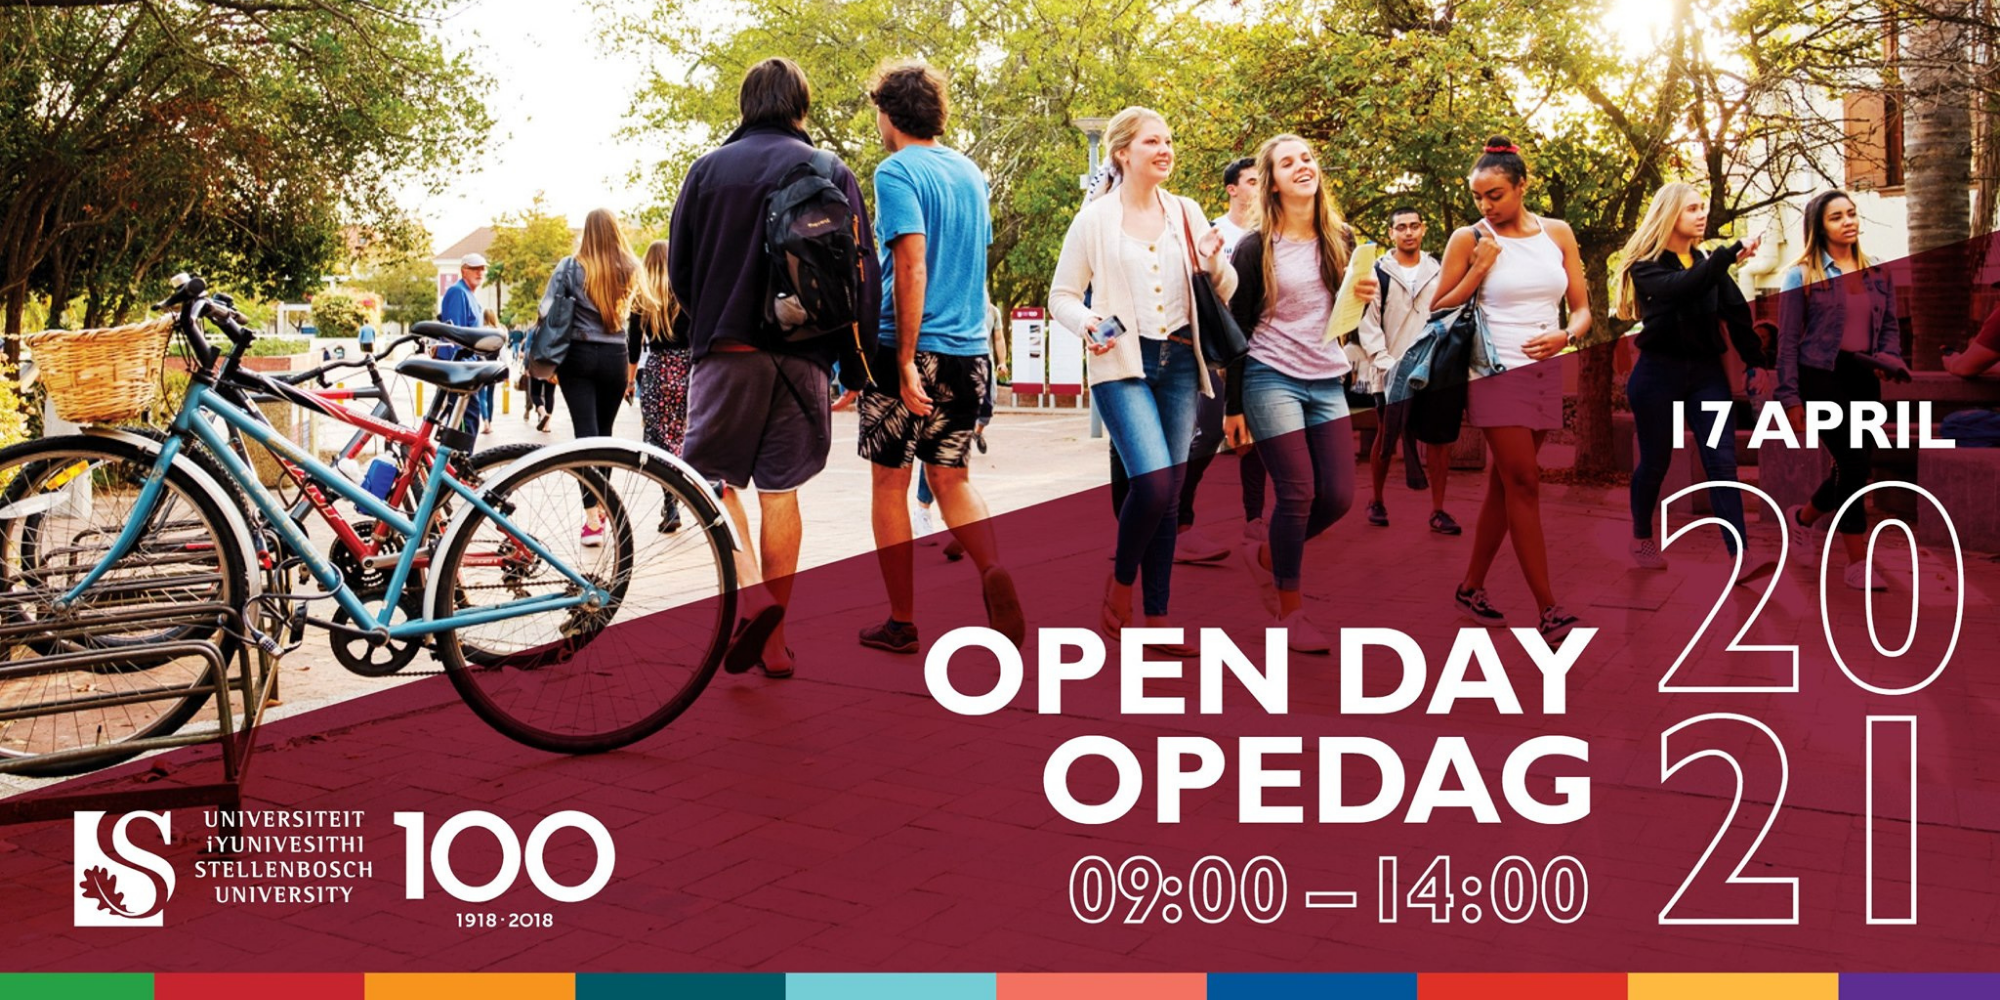 Open day picture.png